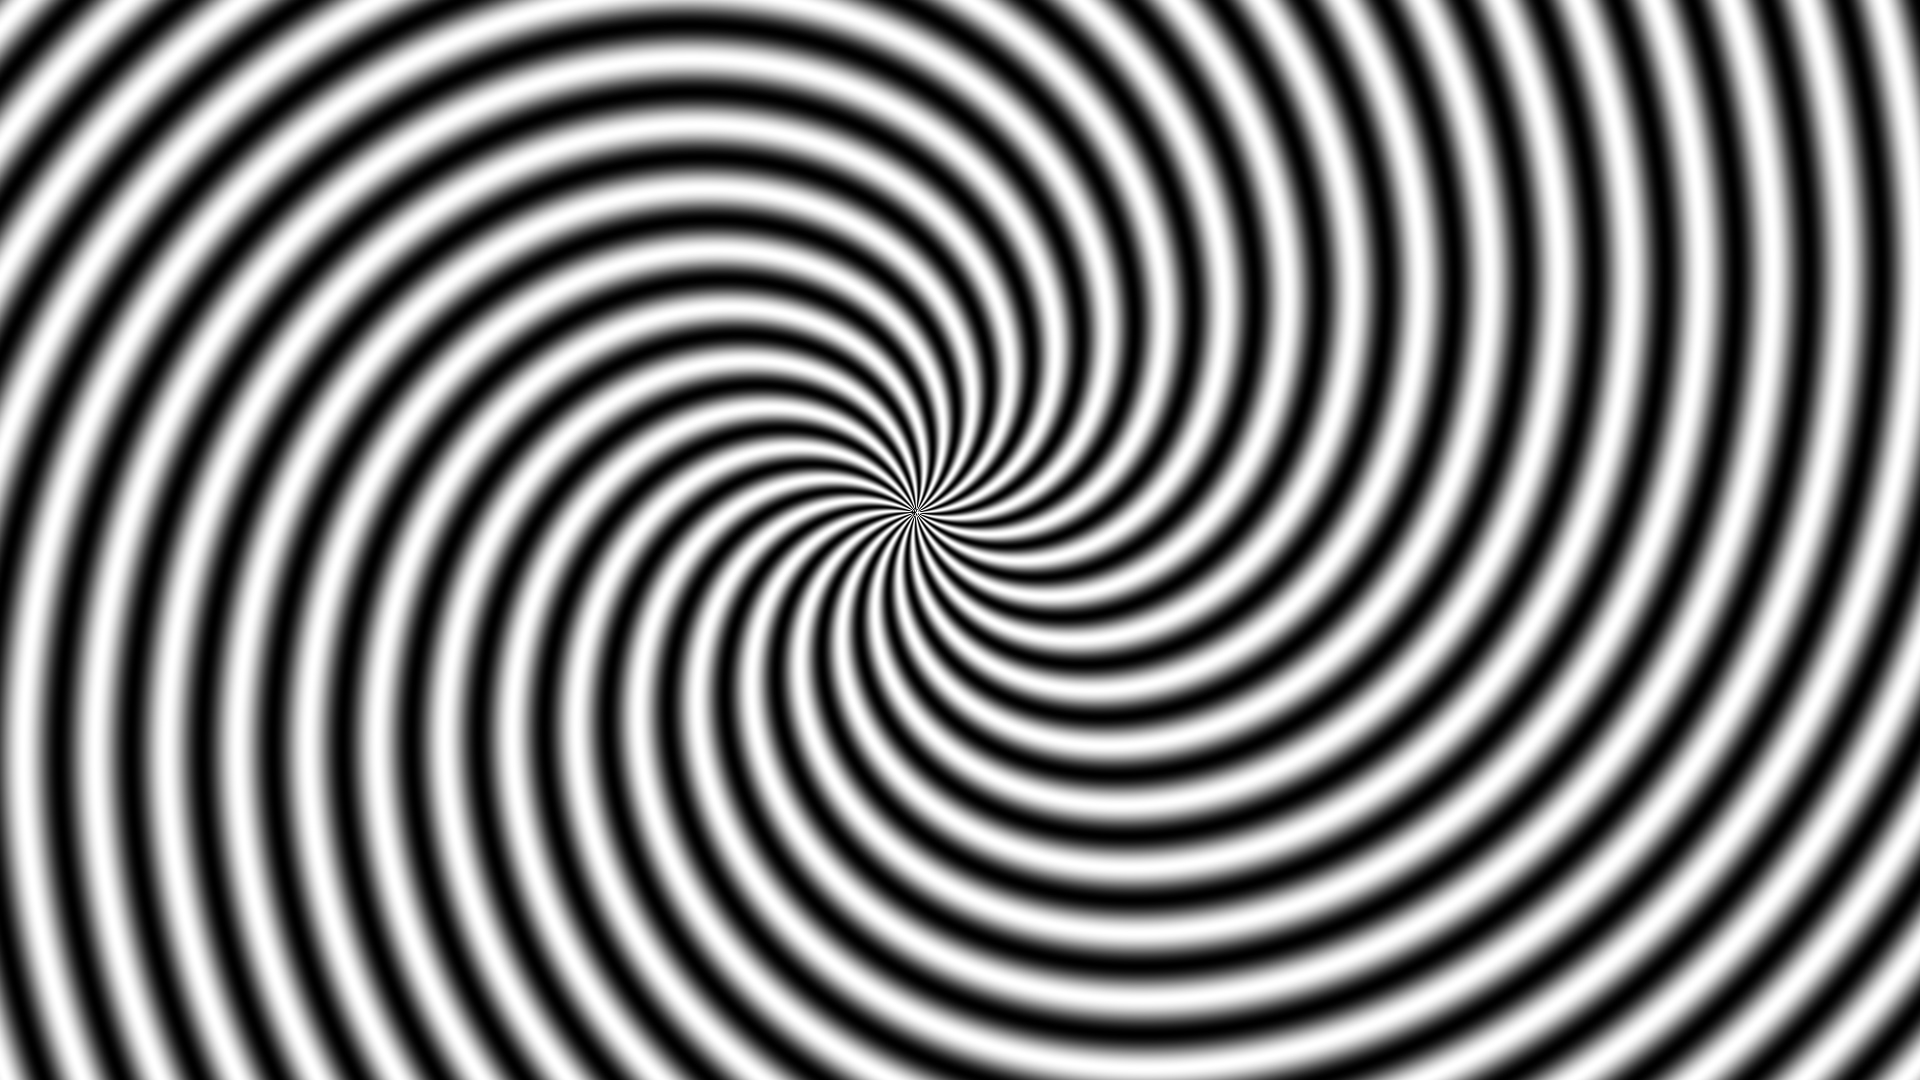 2560x1080 Spiral Optical Illusion 2560x1080 Resolution Wallpaper Hd Artist 4k Wallpapers Images Photos And Background Wallpapers Den